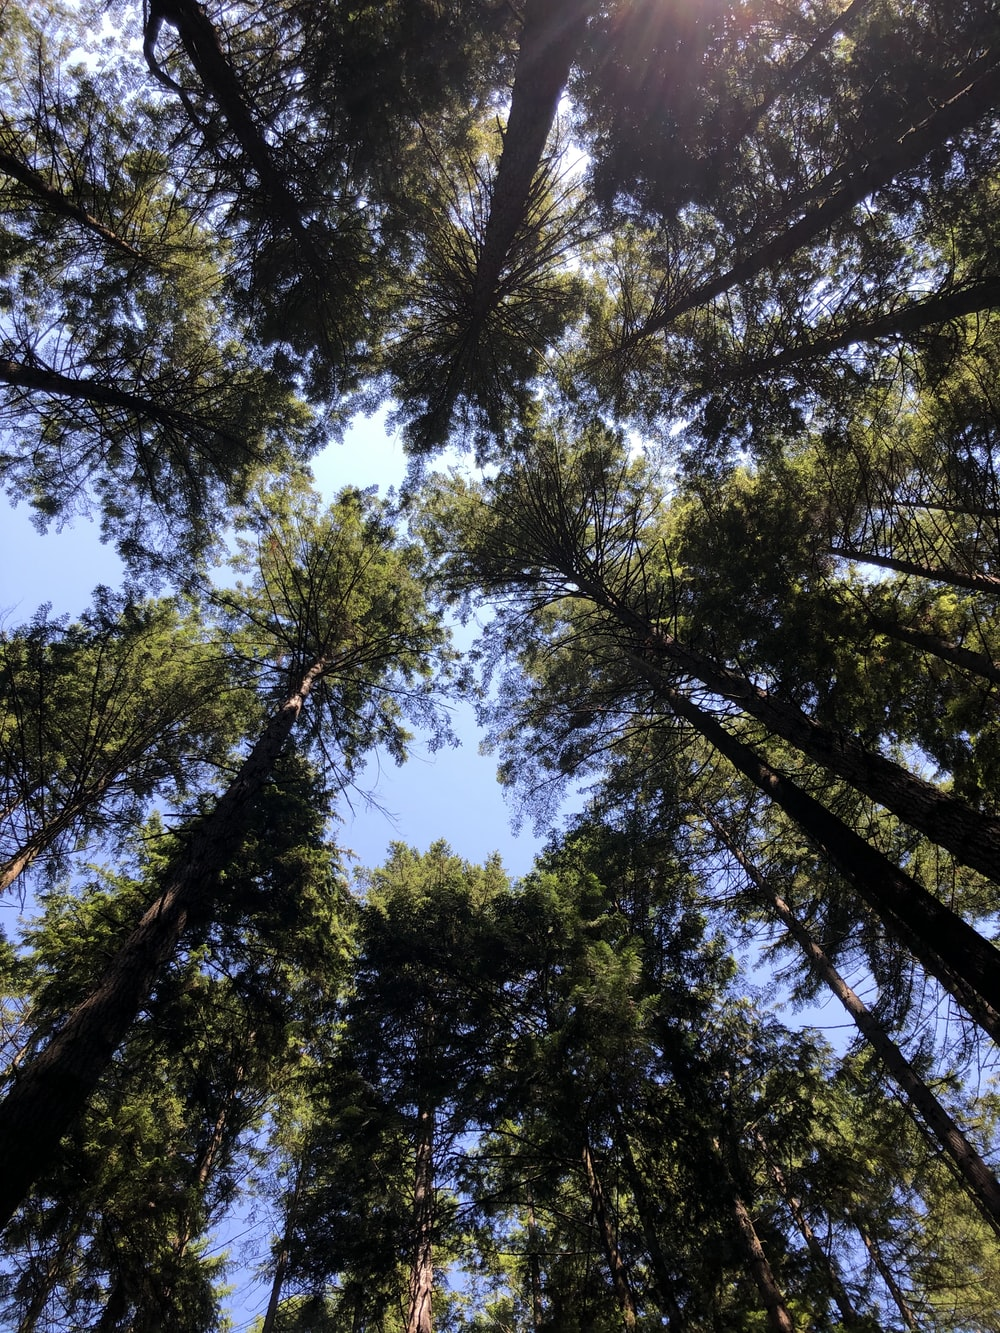 low angle photography of green trees under blue sky during daytime